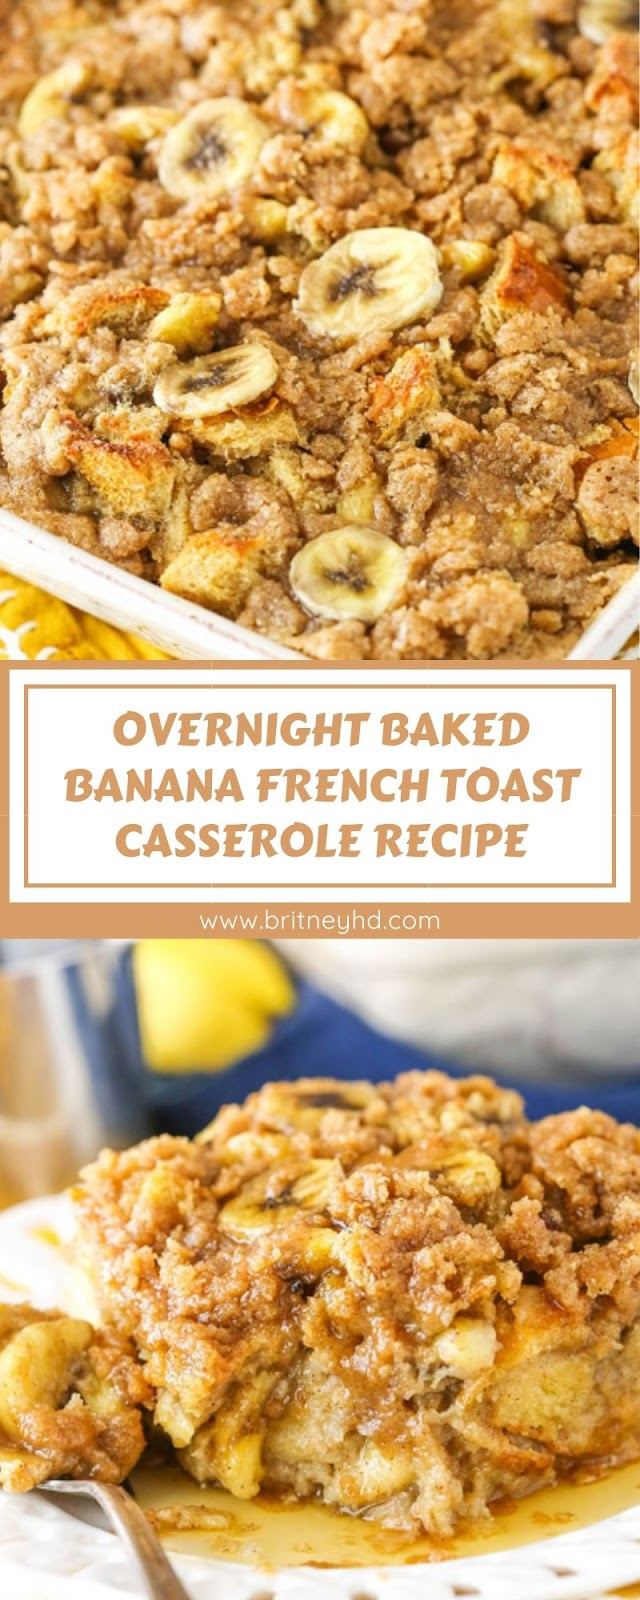 OVERNIGHT BAKED BANANA FRENCH TOAST CASSEROLE RECIPE